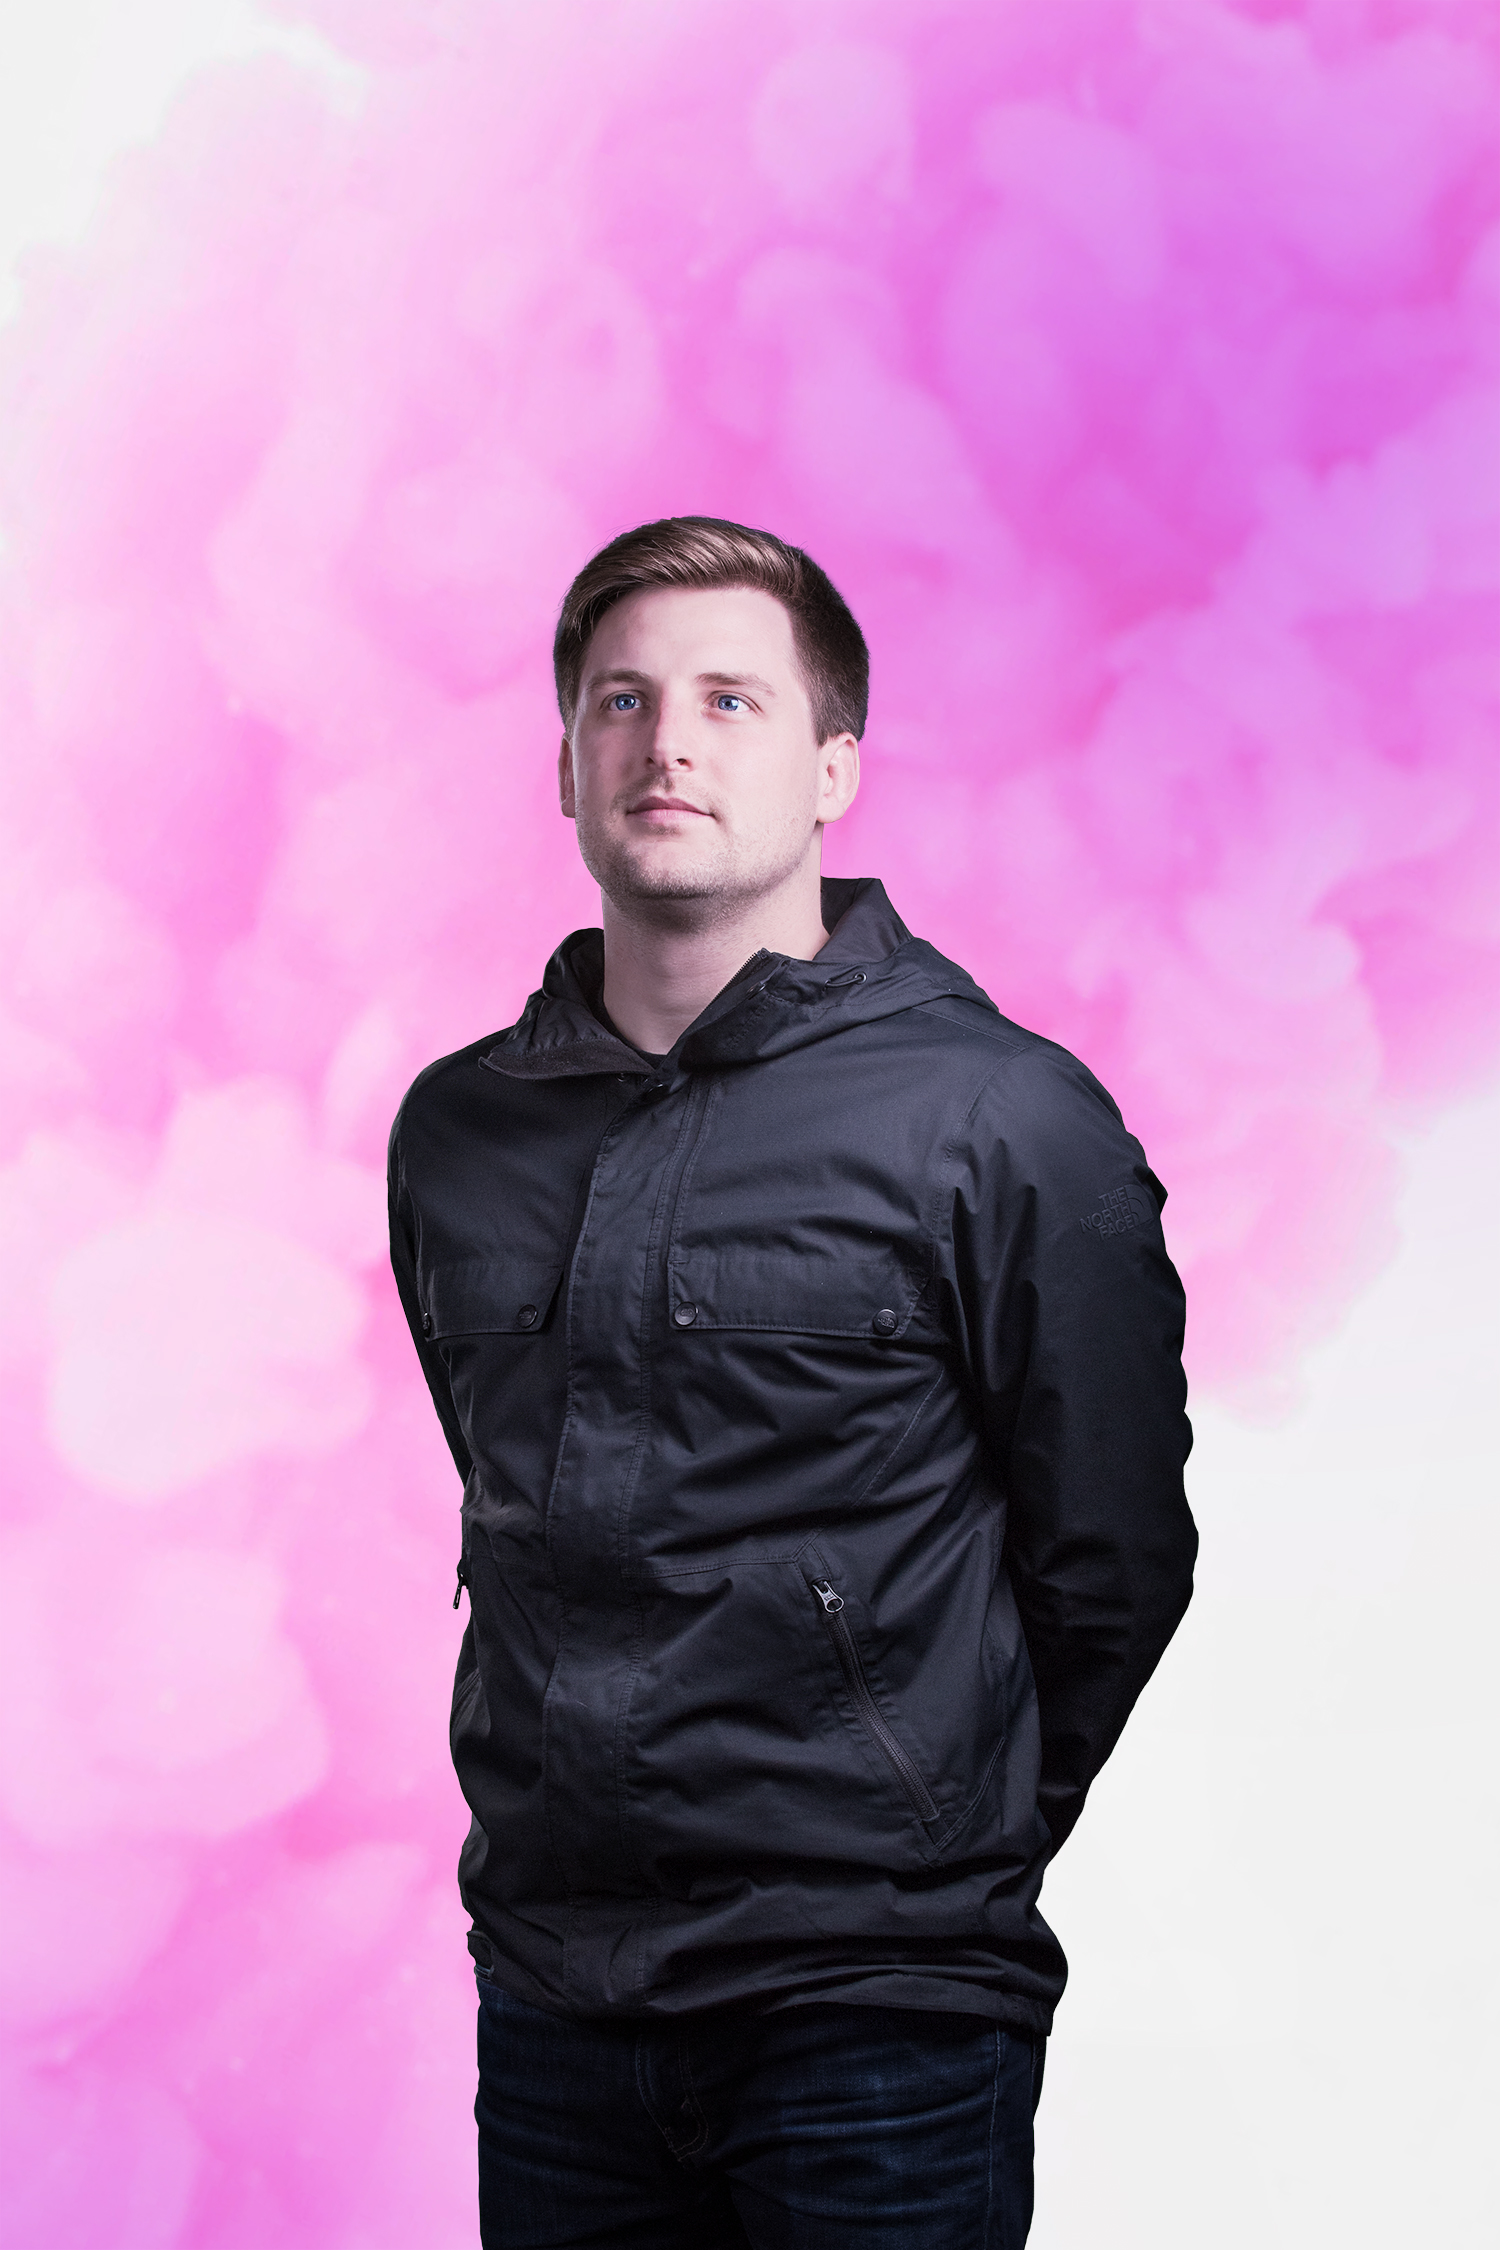 Jake Welchert - Designer / DeveloperI work in the design and front-end development trade. Trying to make a difference for small businesses and organizations. I thrive on ideation, experimentation, problem-solving, and doing some good for those who deserve it.